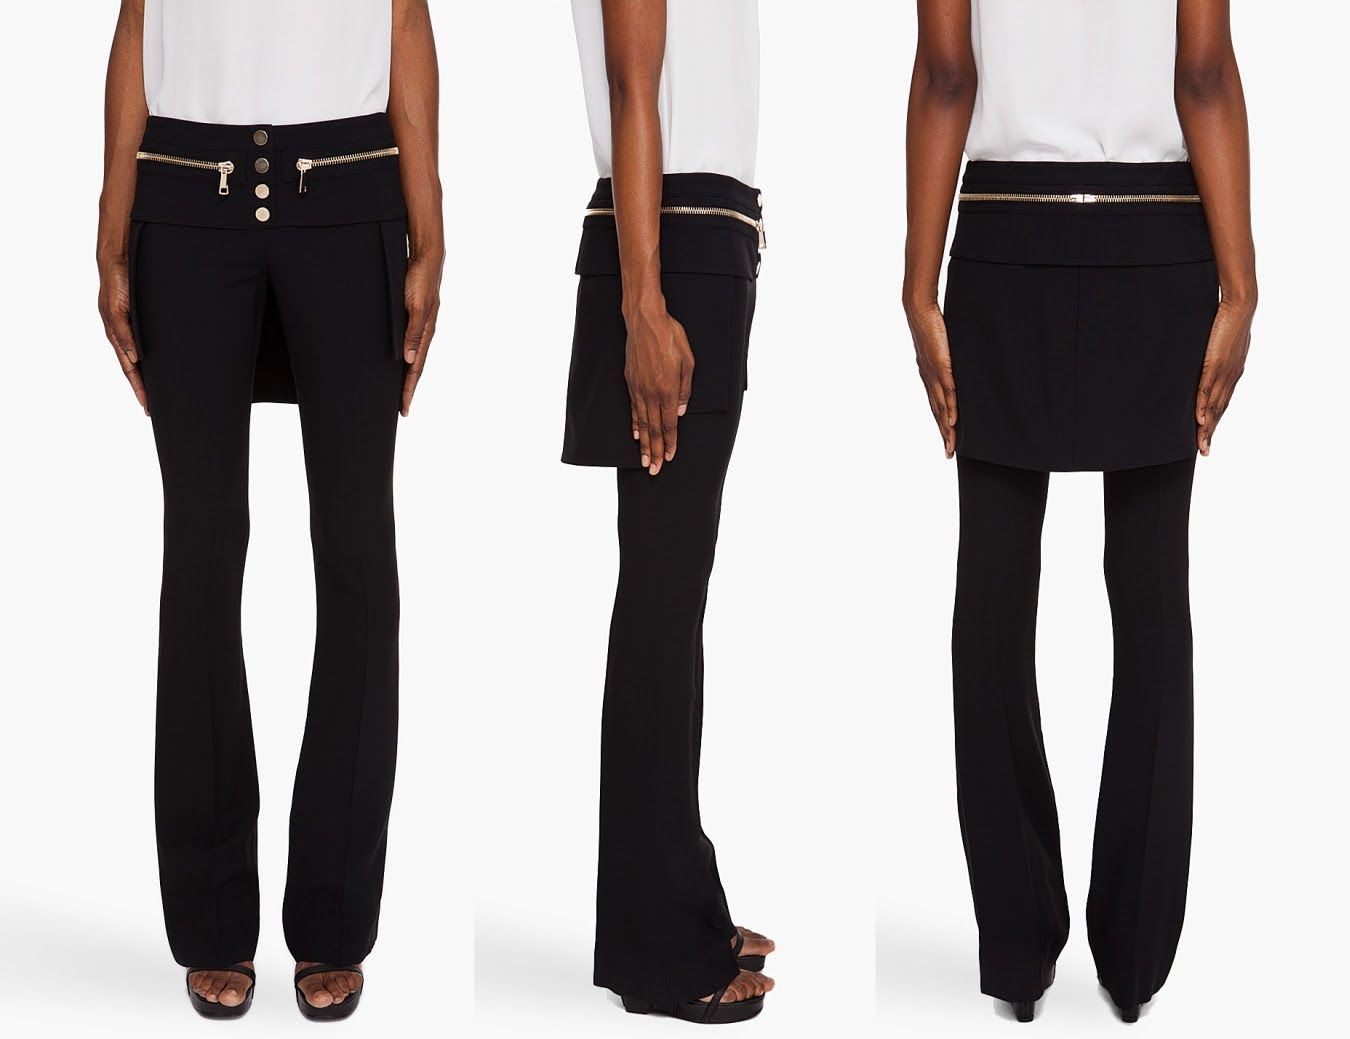 0aaac9586 Skirt on trousers. It´s coming back... | Fashion | Trousers, Black ...